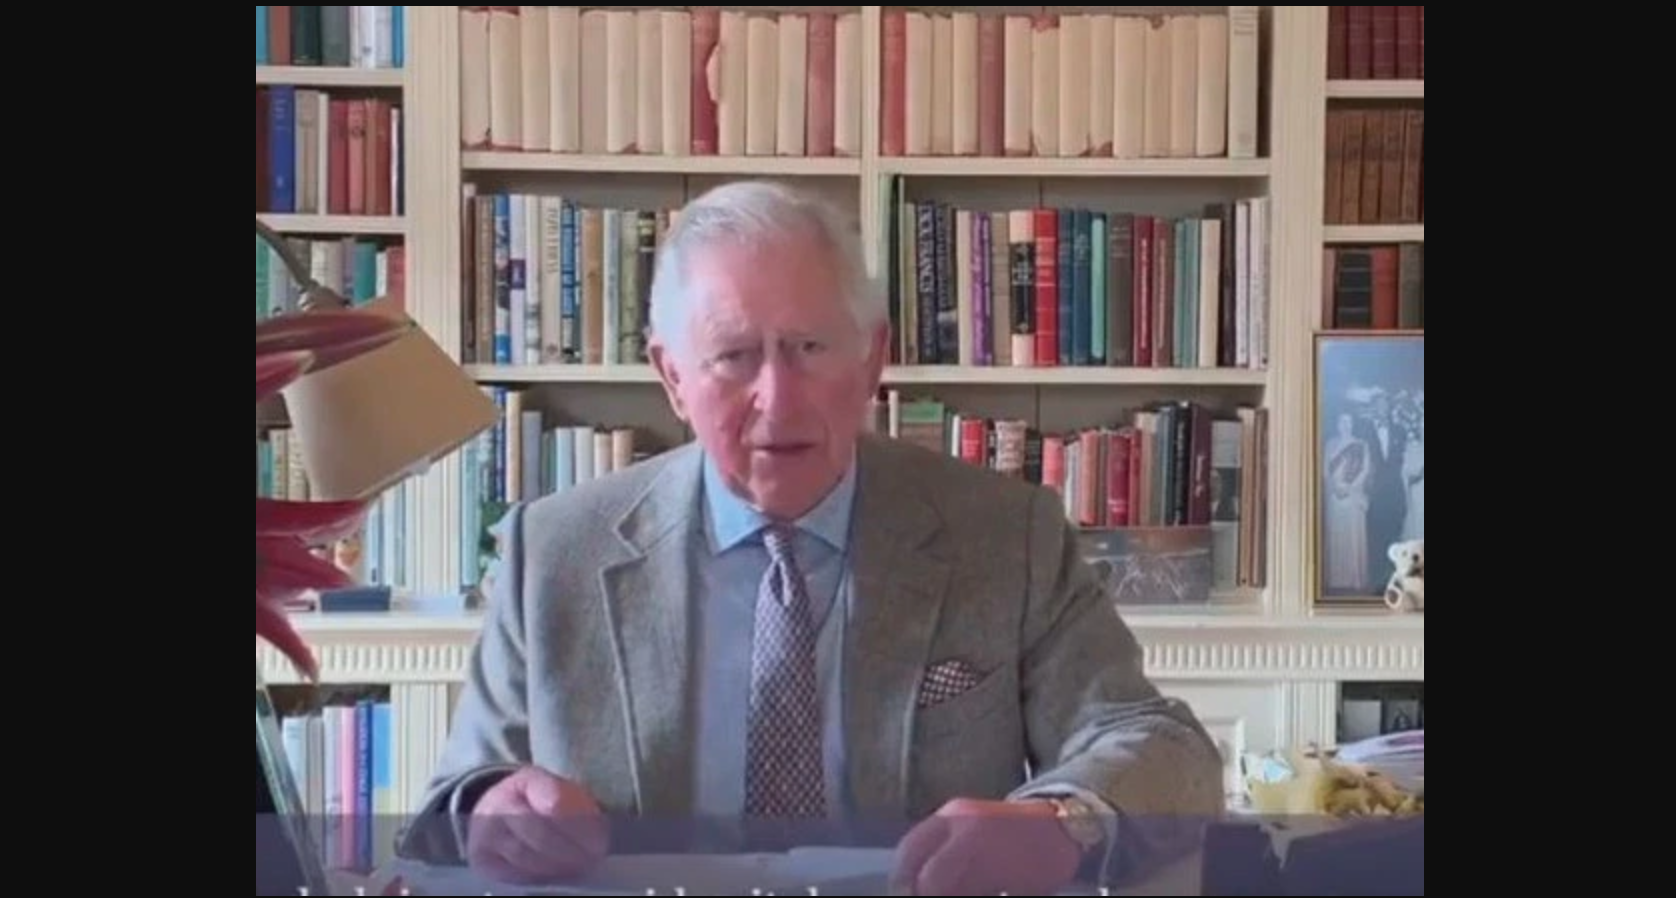 Prince Charles Gives the Royal Treatment to Compassionate and Clear Messaging in the Coronavirus Era